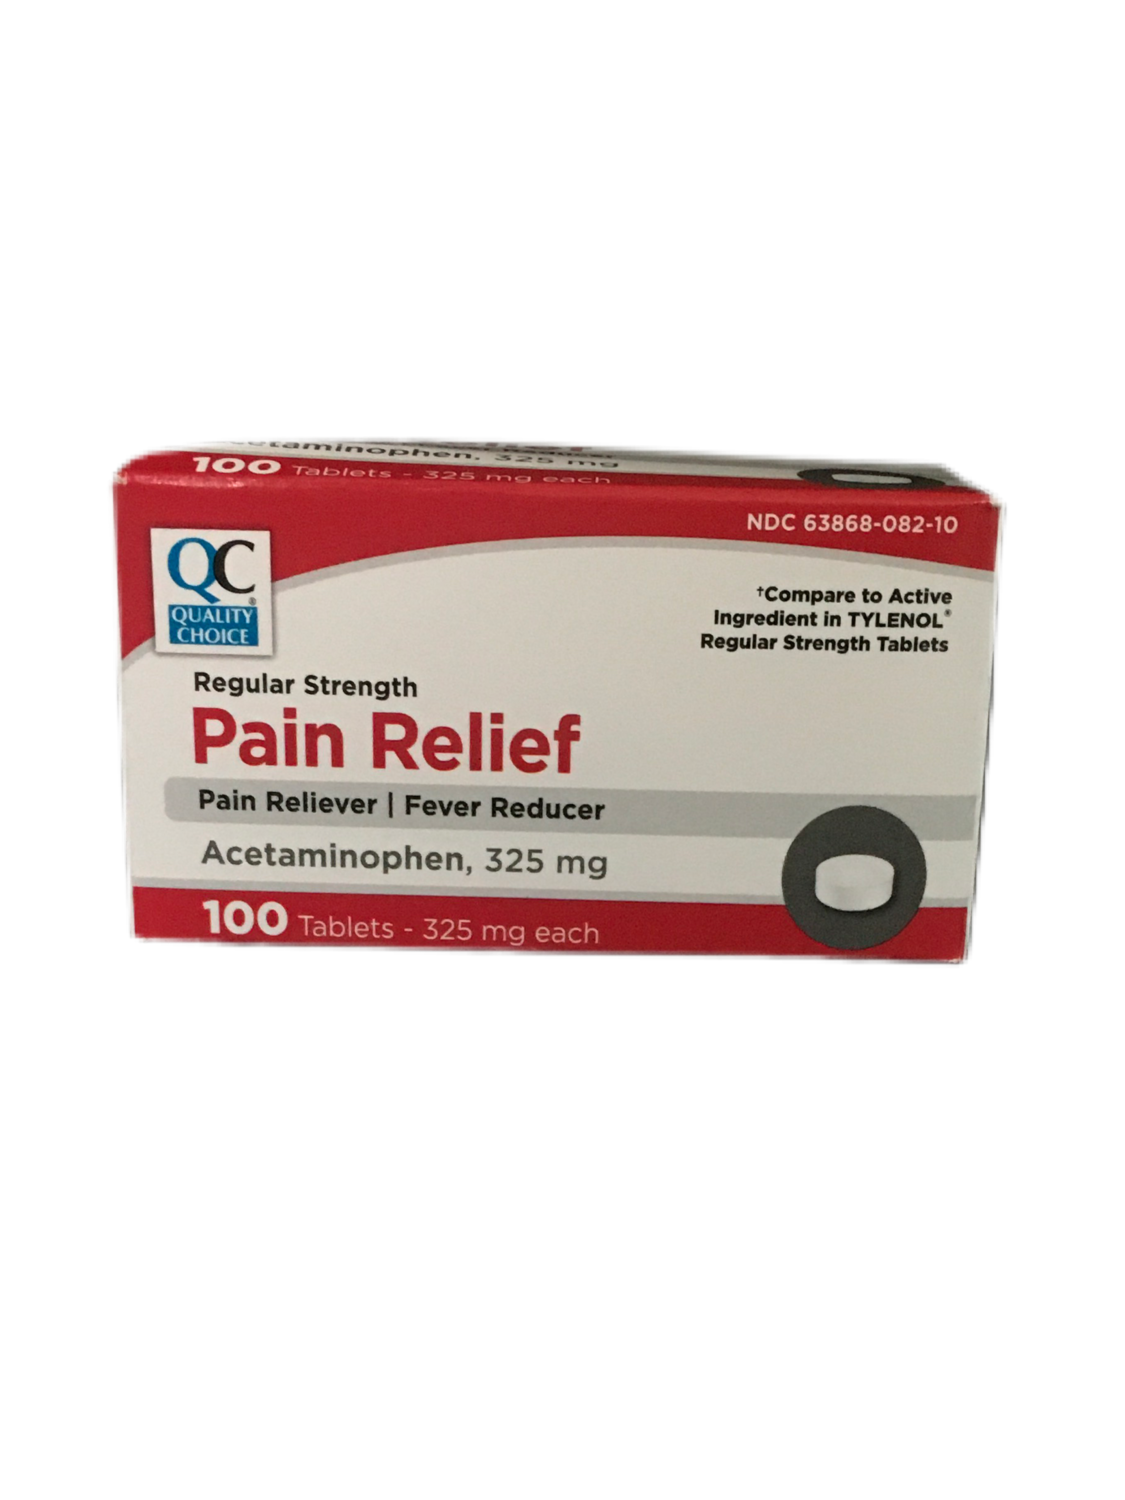 QC Pain Relief 325 mg 100 tablets